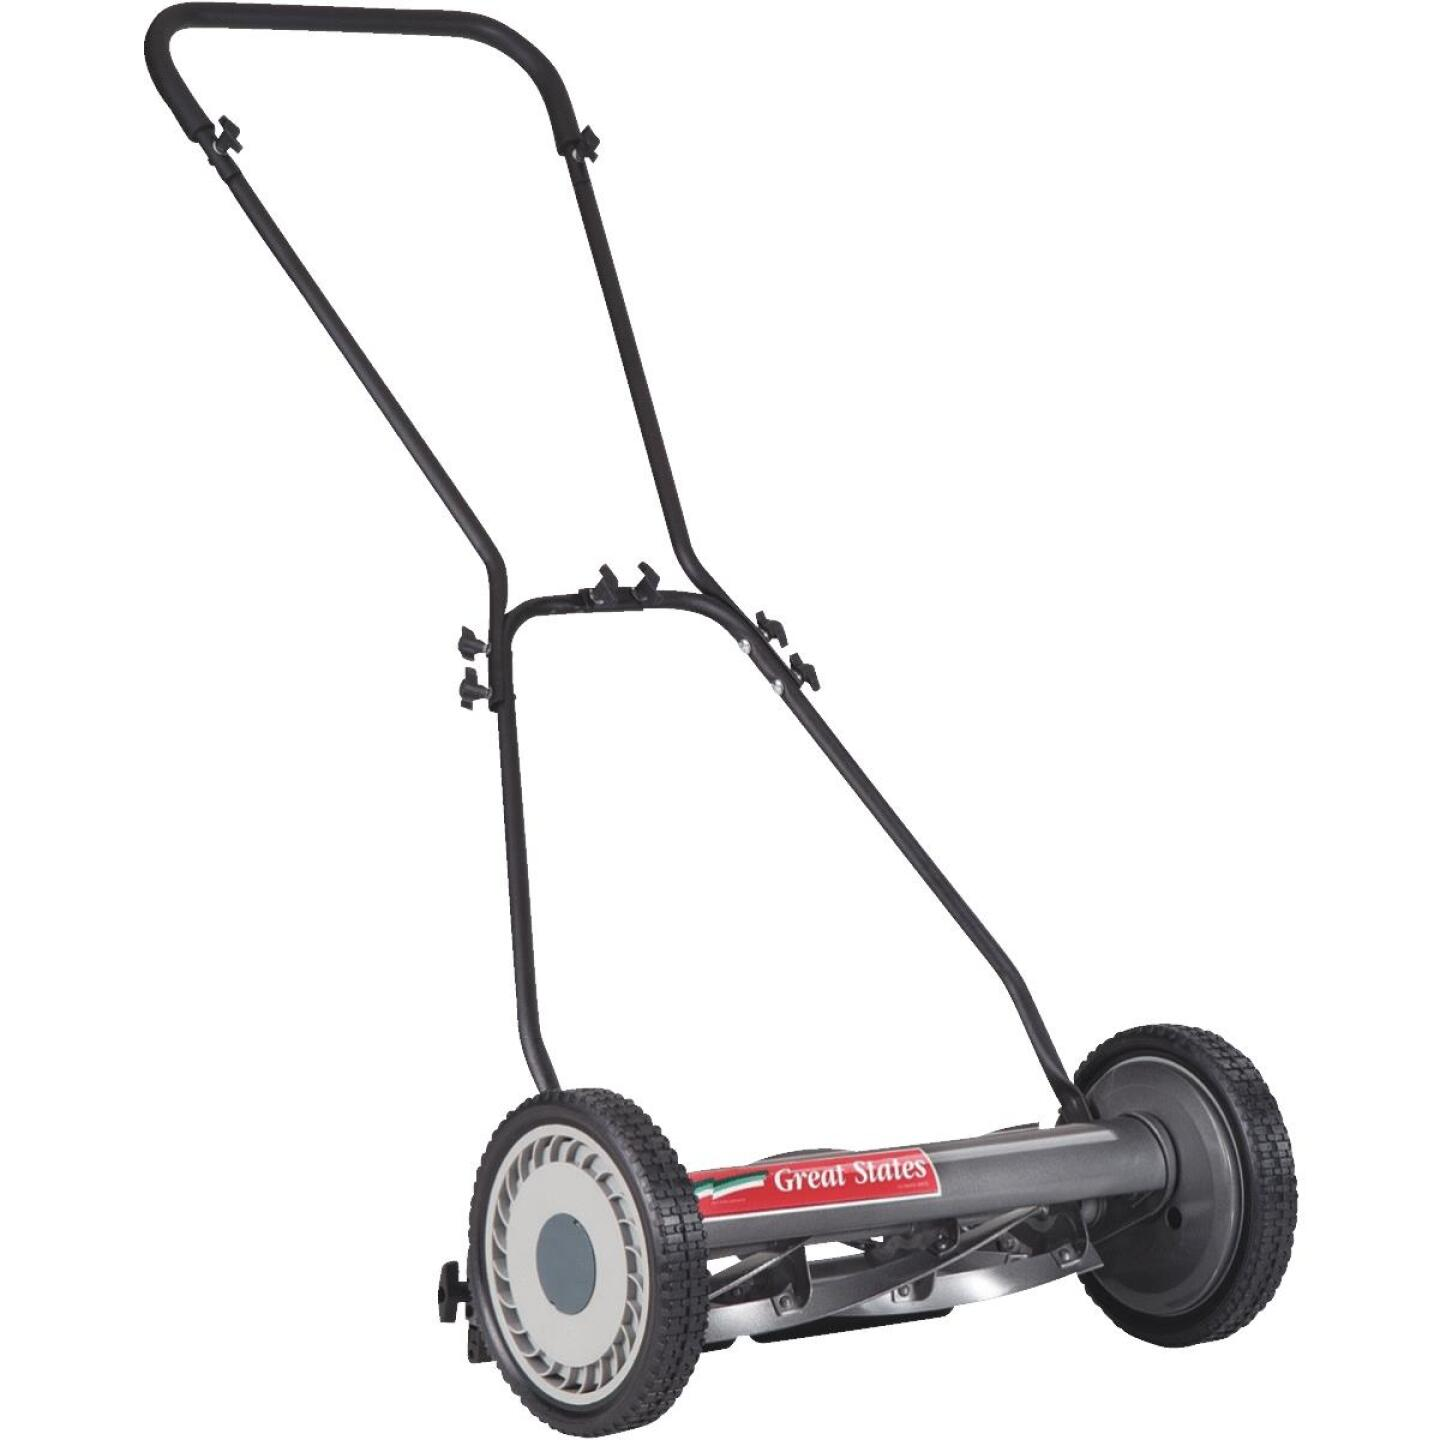 Great States 18 In. Push Reel Lawn Mower Image 1